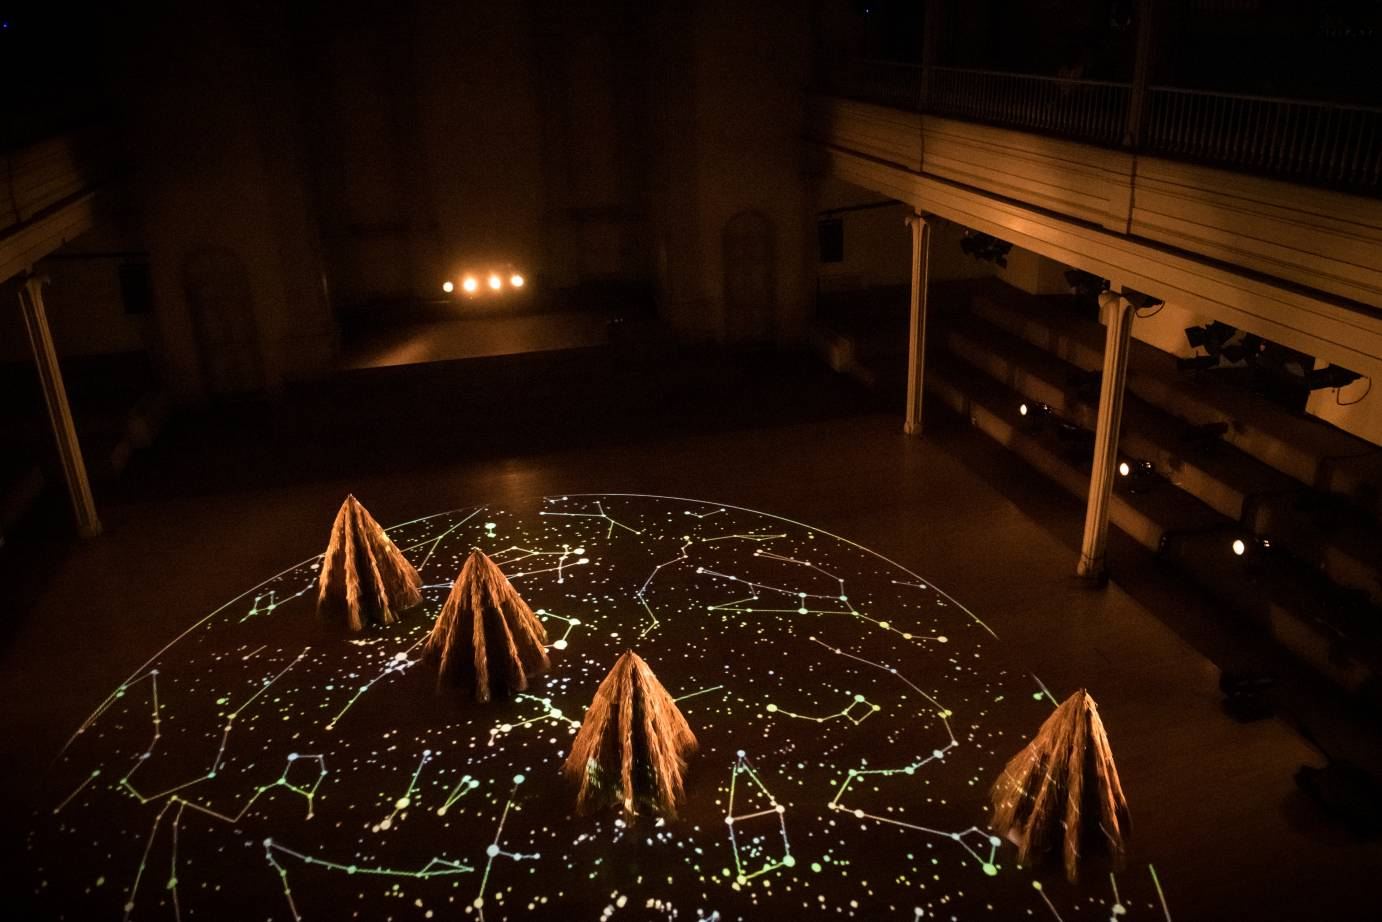 Four dancers with raffia cones covering them stand on a floor illuminated with a projection of stars and constellations